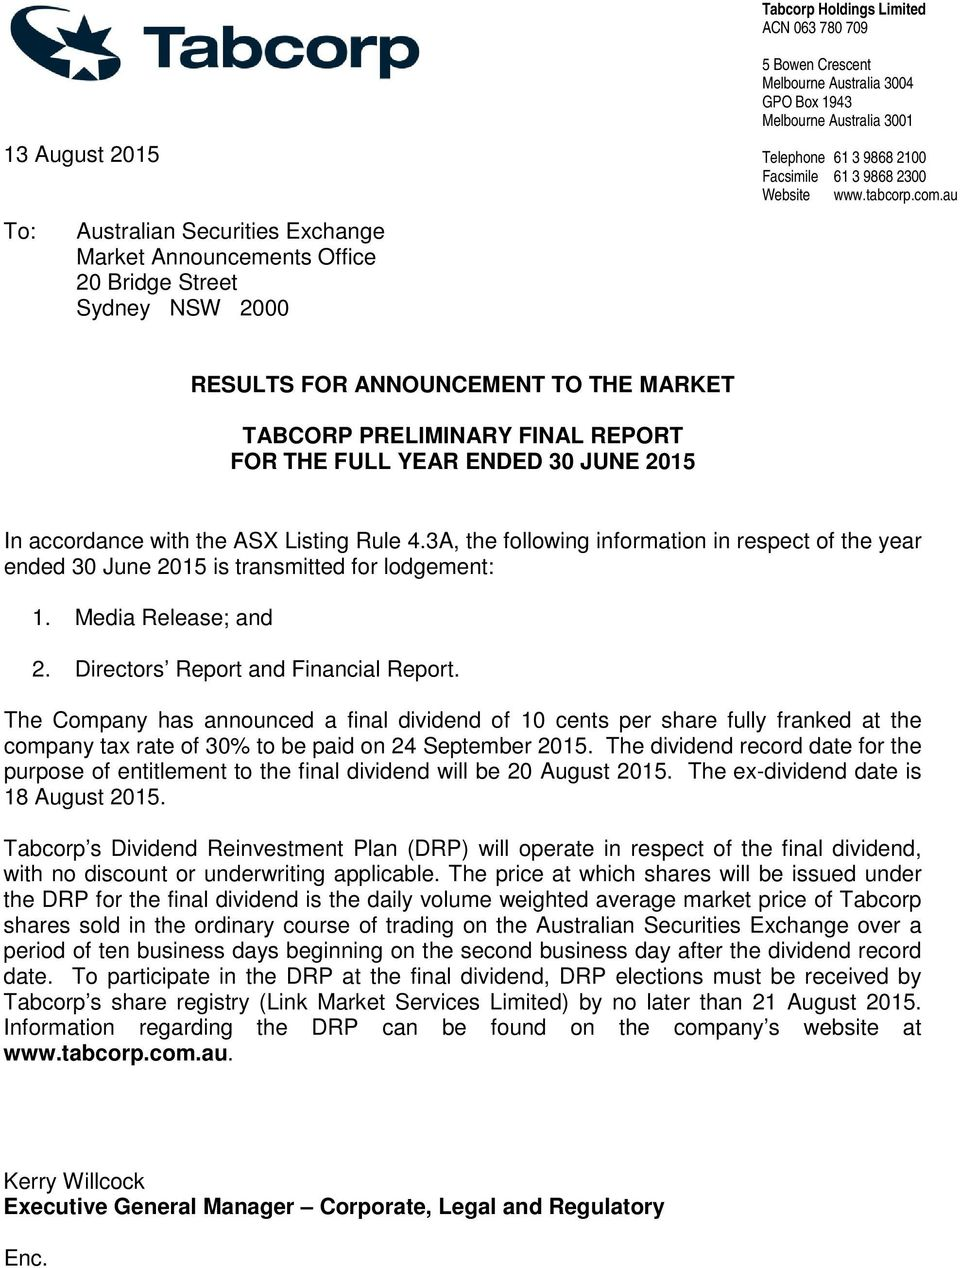 au RESULTS FOR ANNOUNCEMENT TO THE MARKET TABCORP PRELIMINARY FINAL REPORT FOR THE FULL YEAR ENDED 30 JUNE 2015 In accordance with the ASX Listing Rule 4.